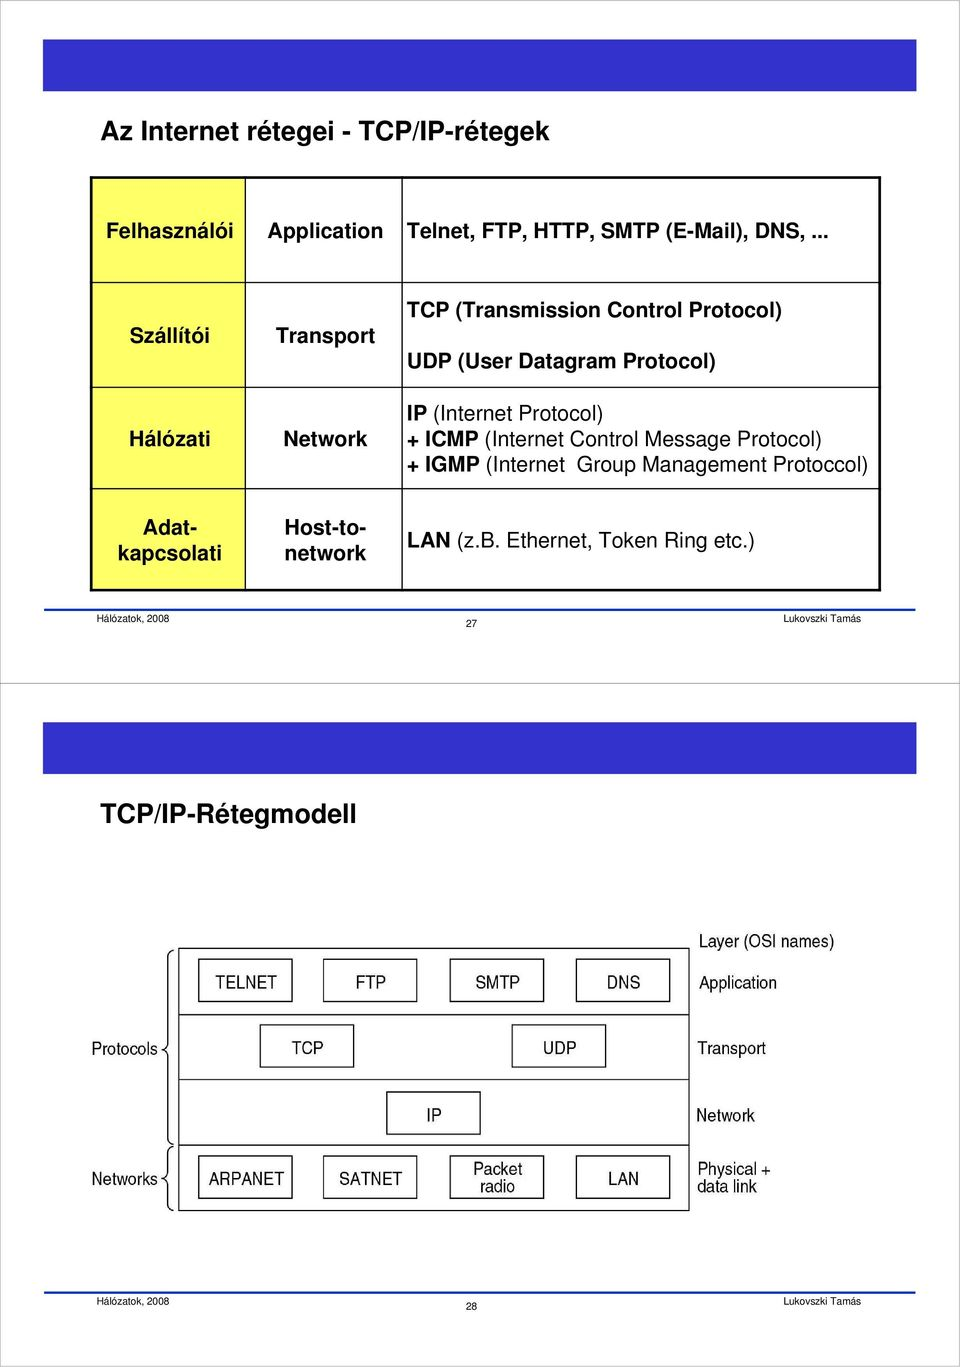 Protocol) IP (Internet Protocol) + ICMP (Internet Control Message Protocol) + IGMP (Internet Group